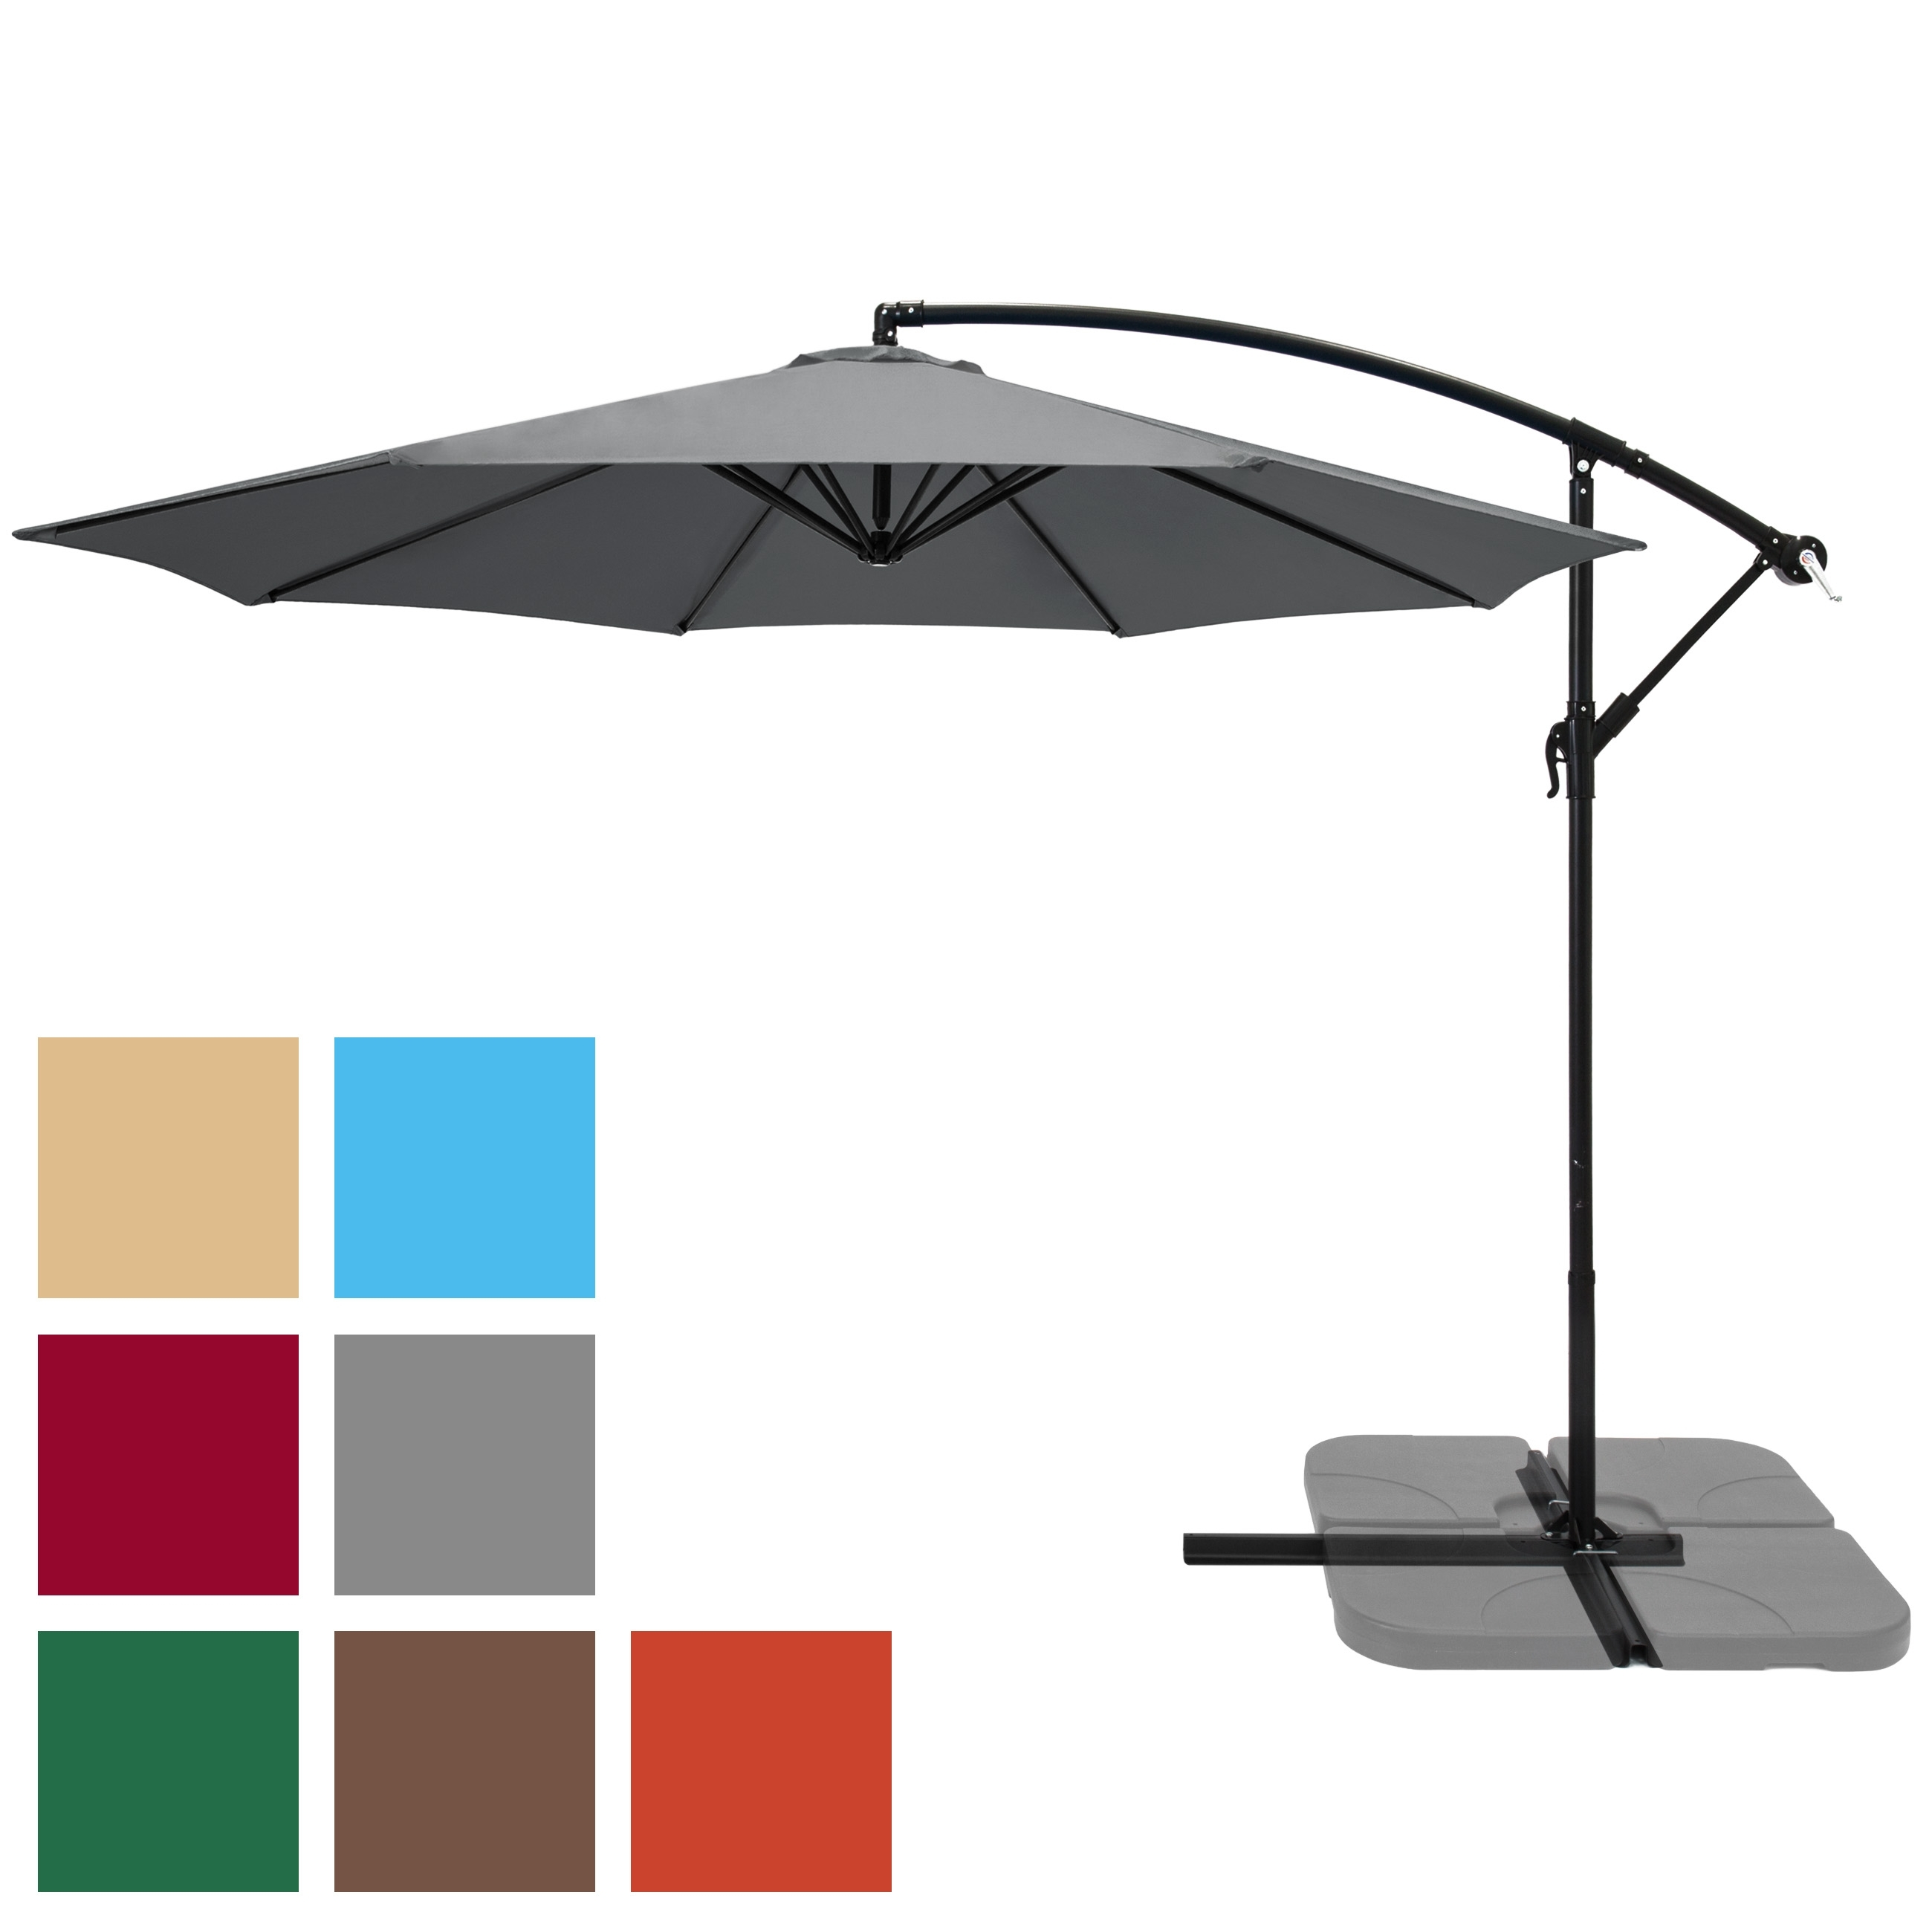 Hanging Offset Patio Umbrellas With Regard To Well Known Bestchoiceproducts: Best Choice Products 10ft Offset Hanging Outdoor (View 19 of 20)